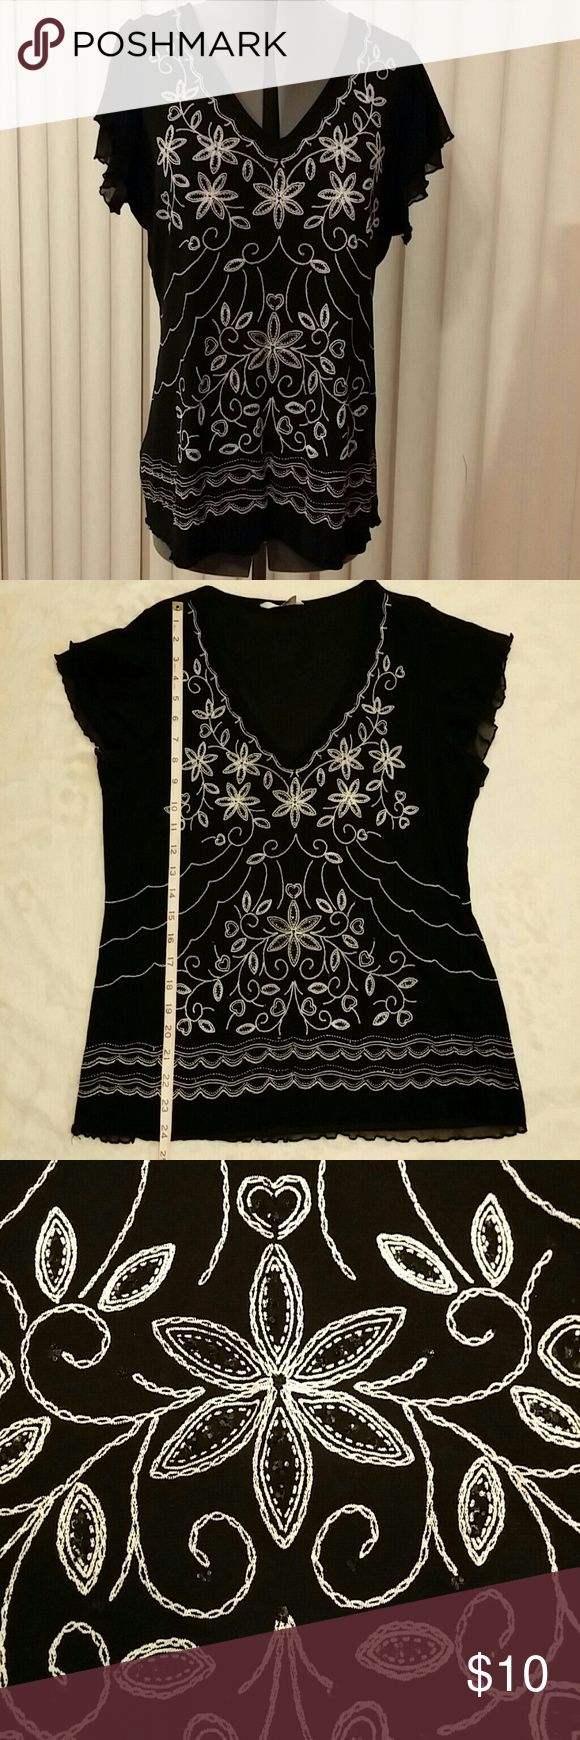 Cute Black and White Blouse Black short sleeve blouse with white floral design and small black sequins; 100% nylon, lining: 100% polyester; bought in the UK, so size is UK 22, which is equivalent to US size 18; good used condition - has only been hand washed. BHS (The British Home Store) Tops Blouses